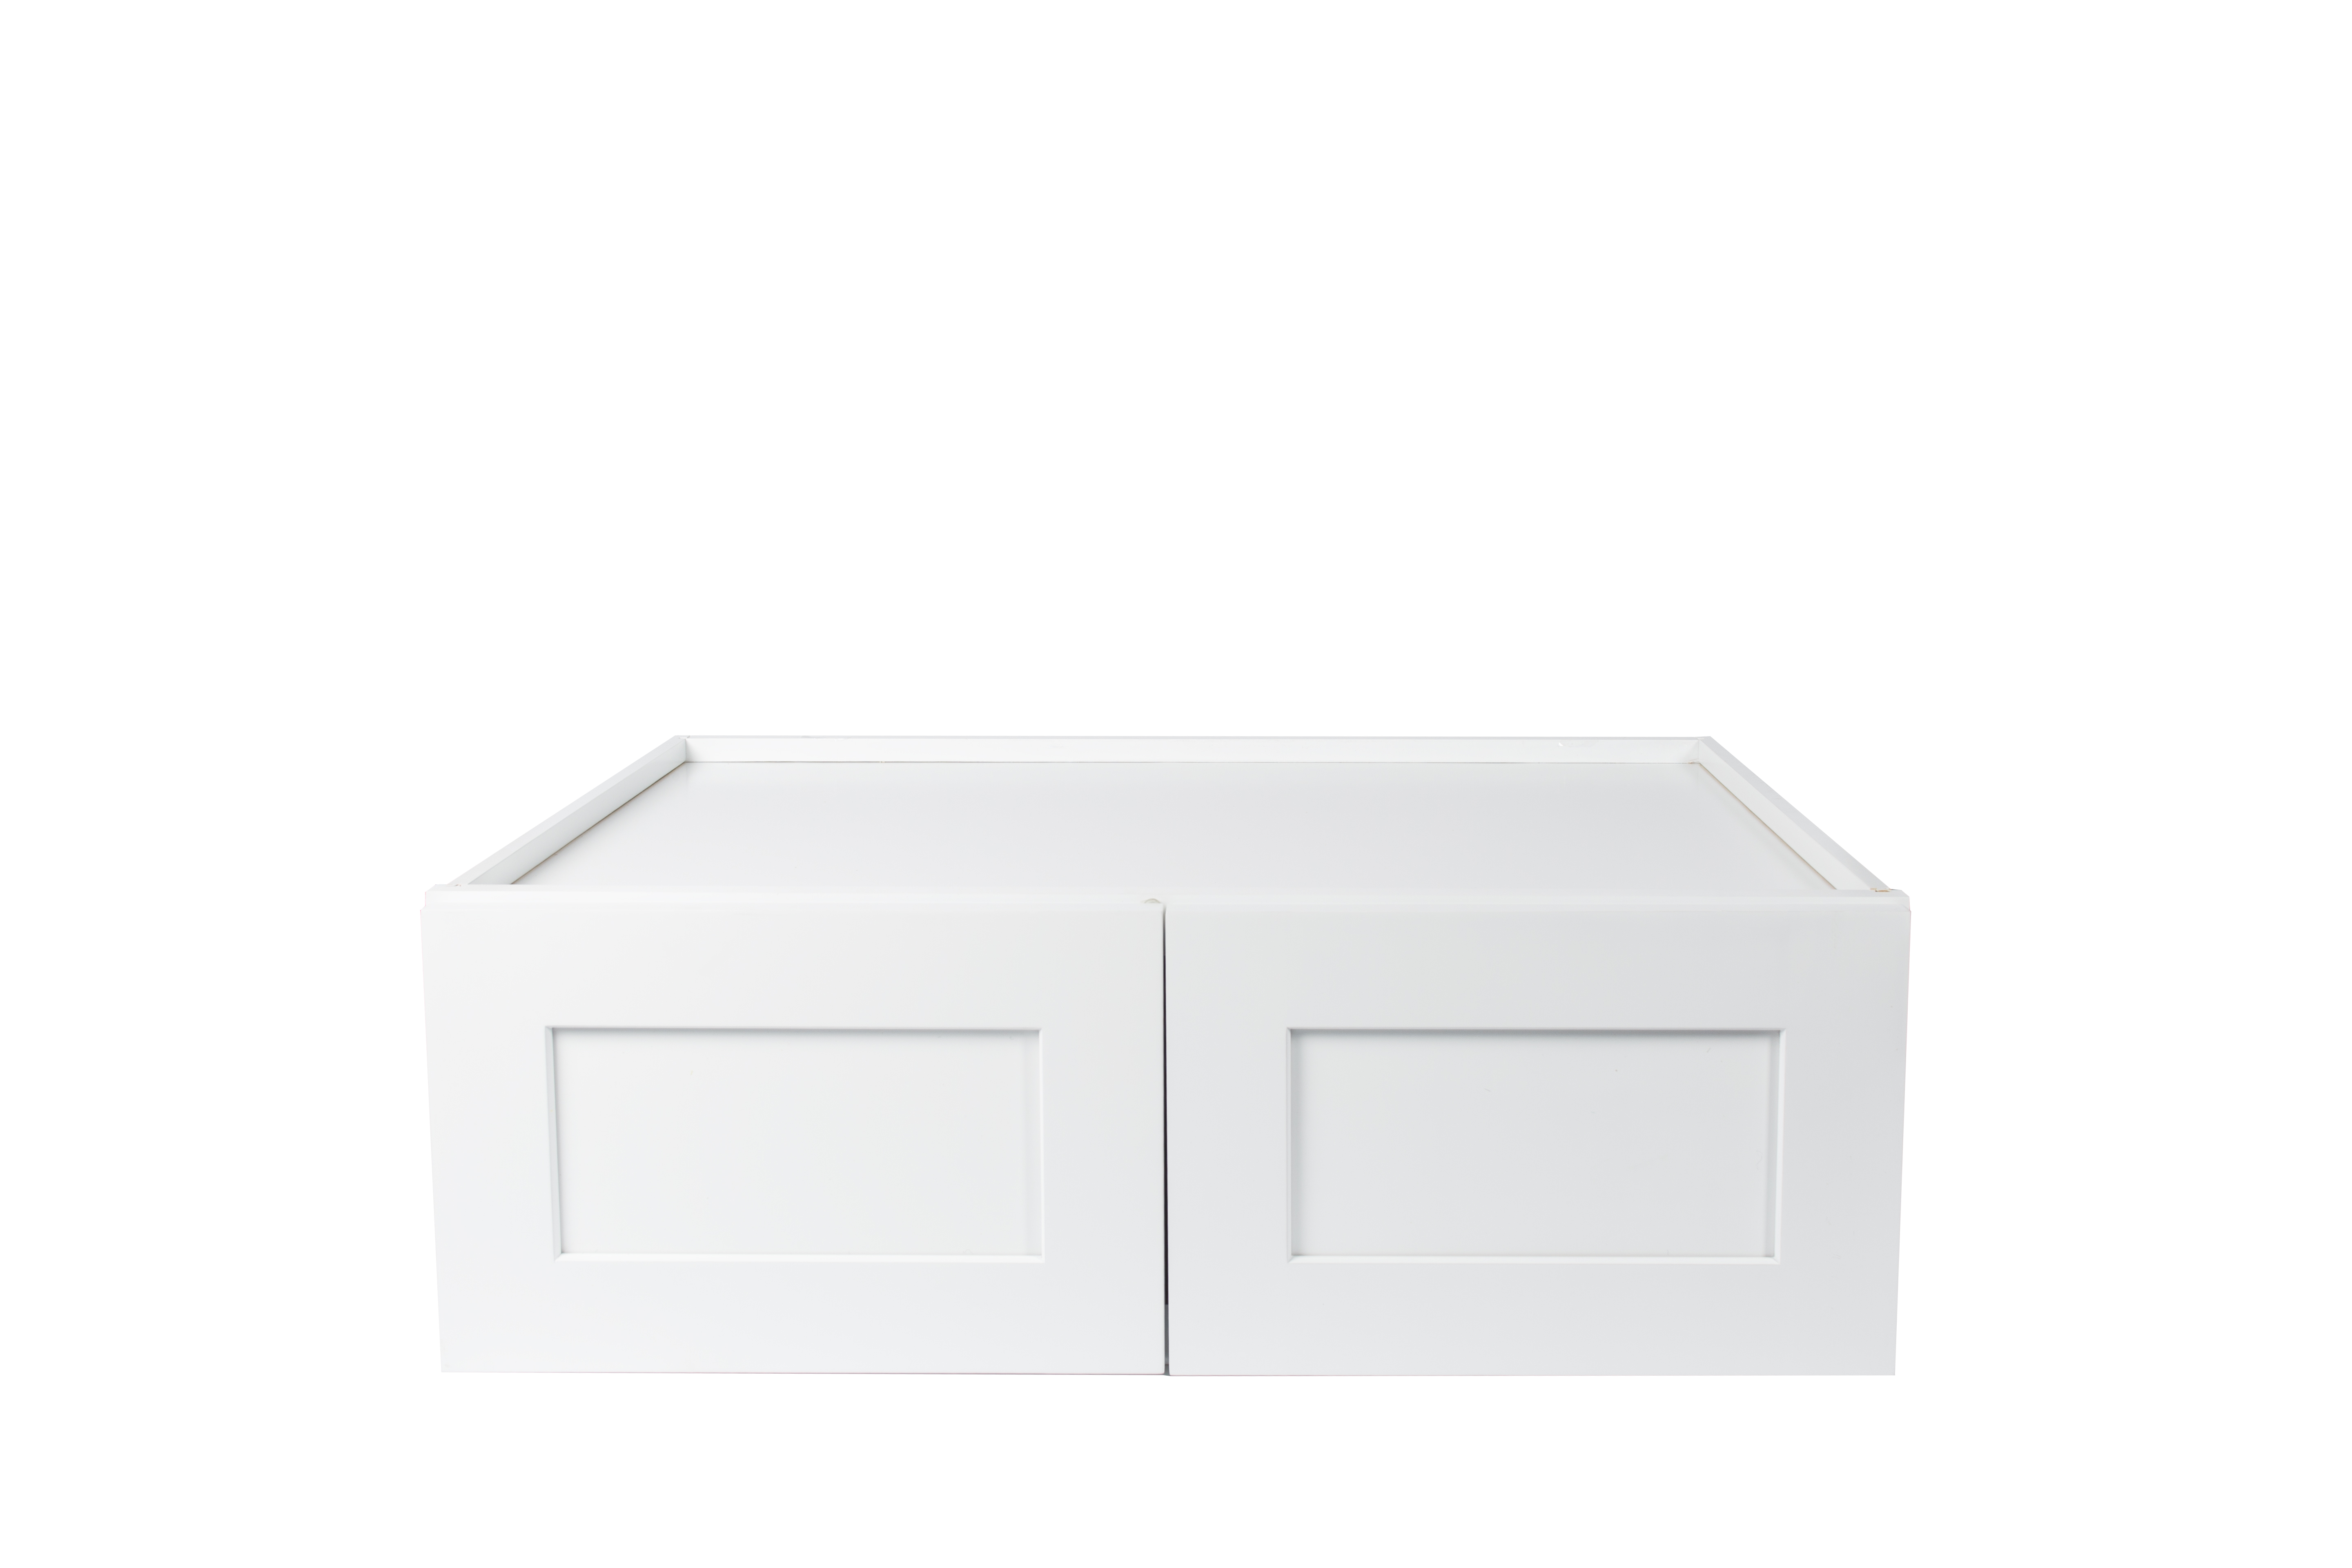 Ready to Assemble 33x18x12 in. Shaker High Double Door Wall Cabinet in White